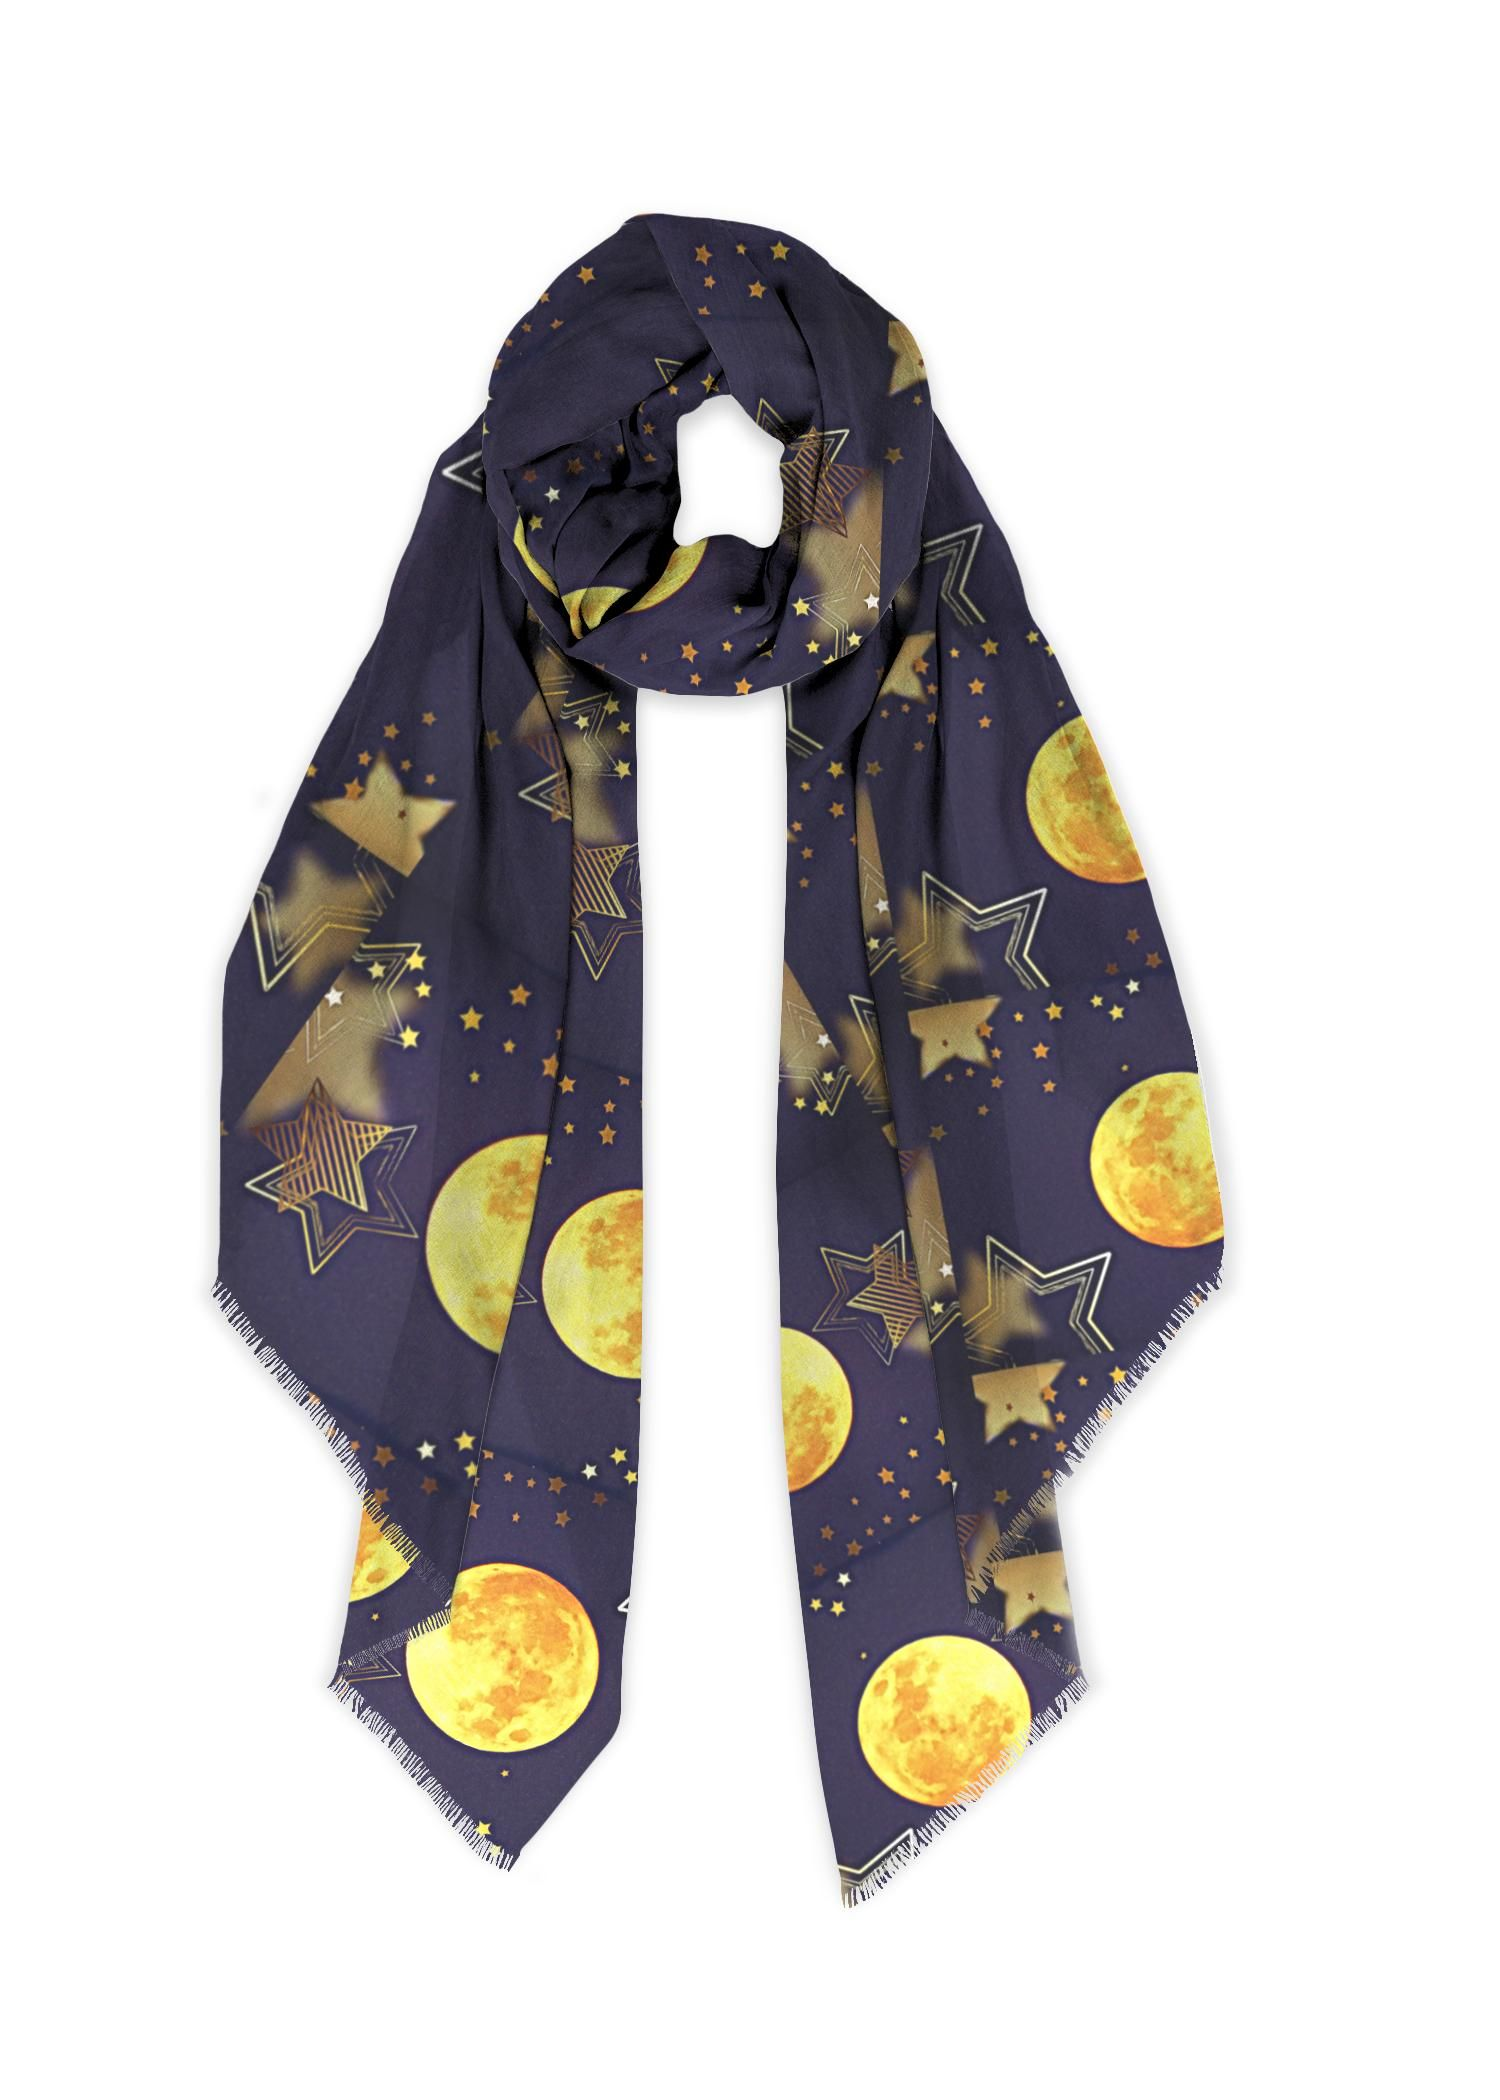 Modal Scarf Theme Full Moon 100 Modal Silk This Scarf S Botanic Origin Makes It Eco Friendly And Incredibly Soft Eac Moon Design Silky Scarf April White